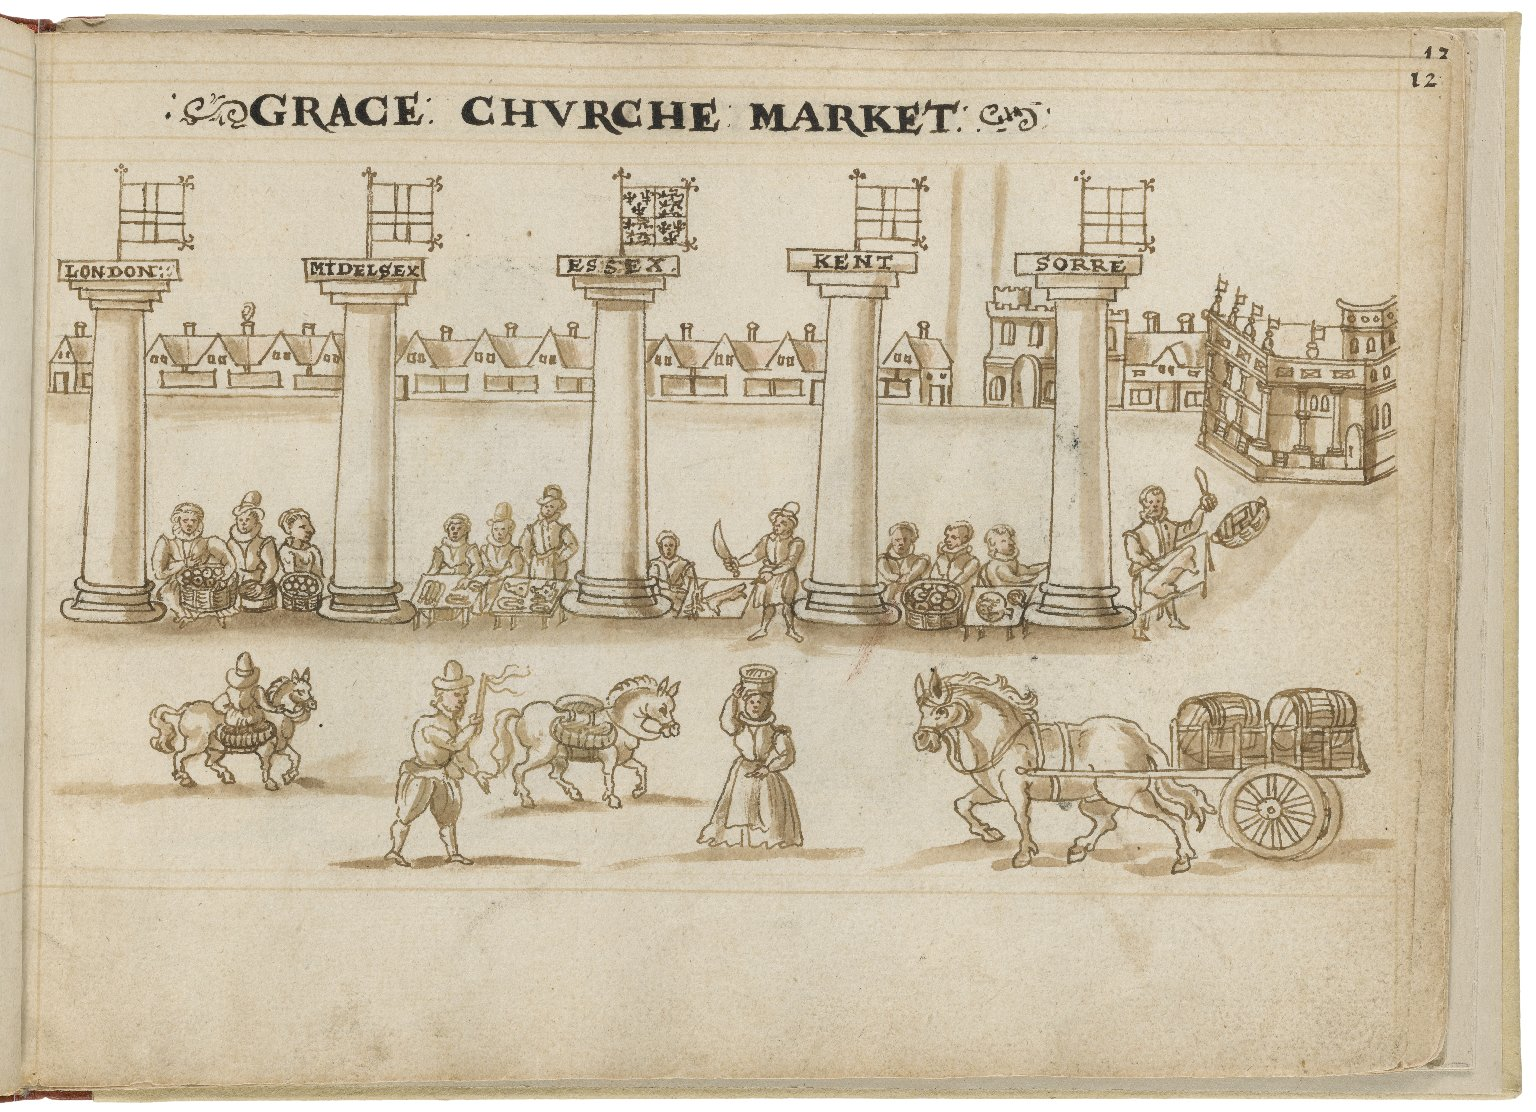 Drawing of Gracechurch by Hugh Alley. Image courtesy of the Folger Digital Image Collection.